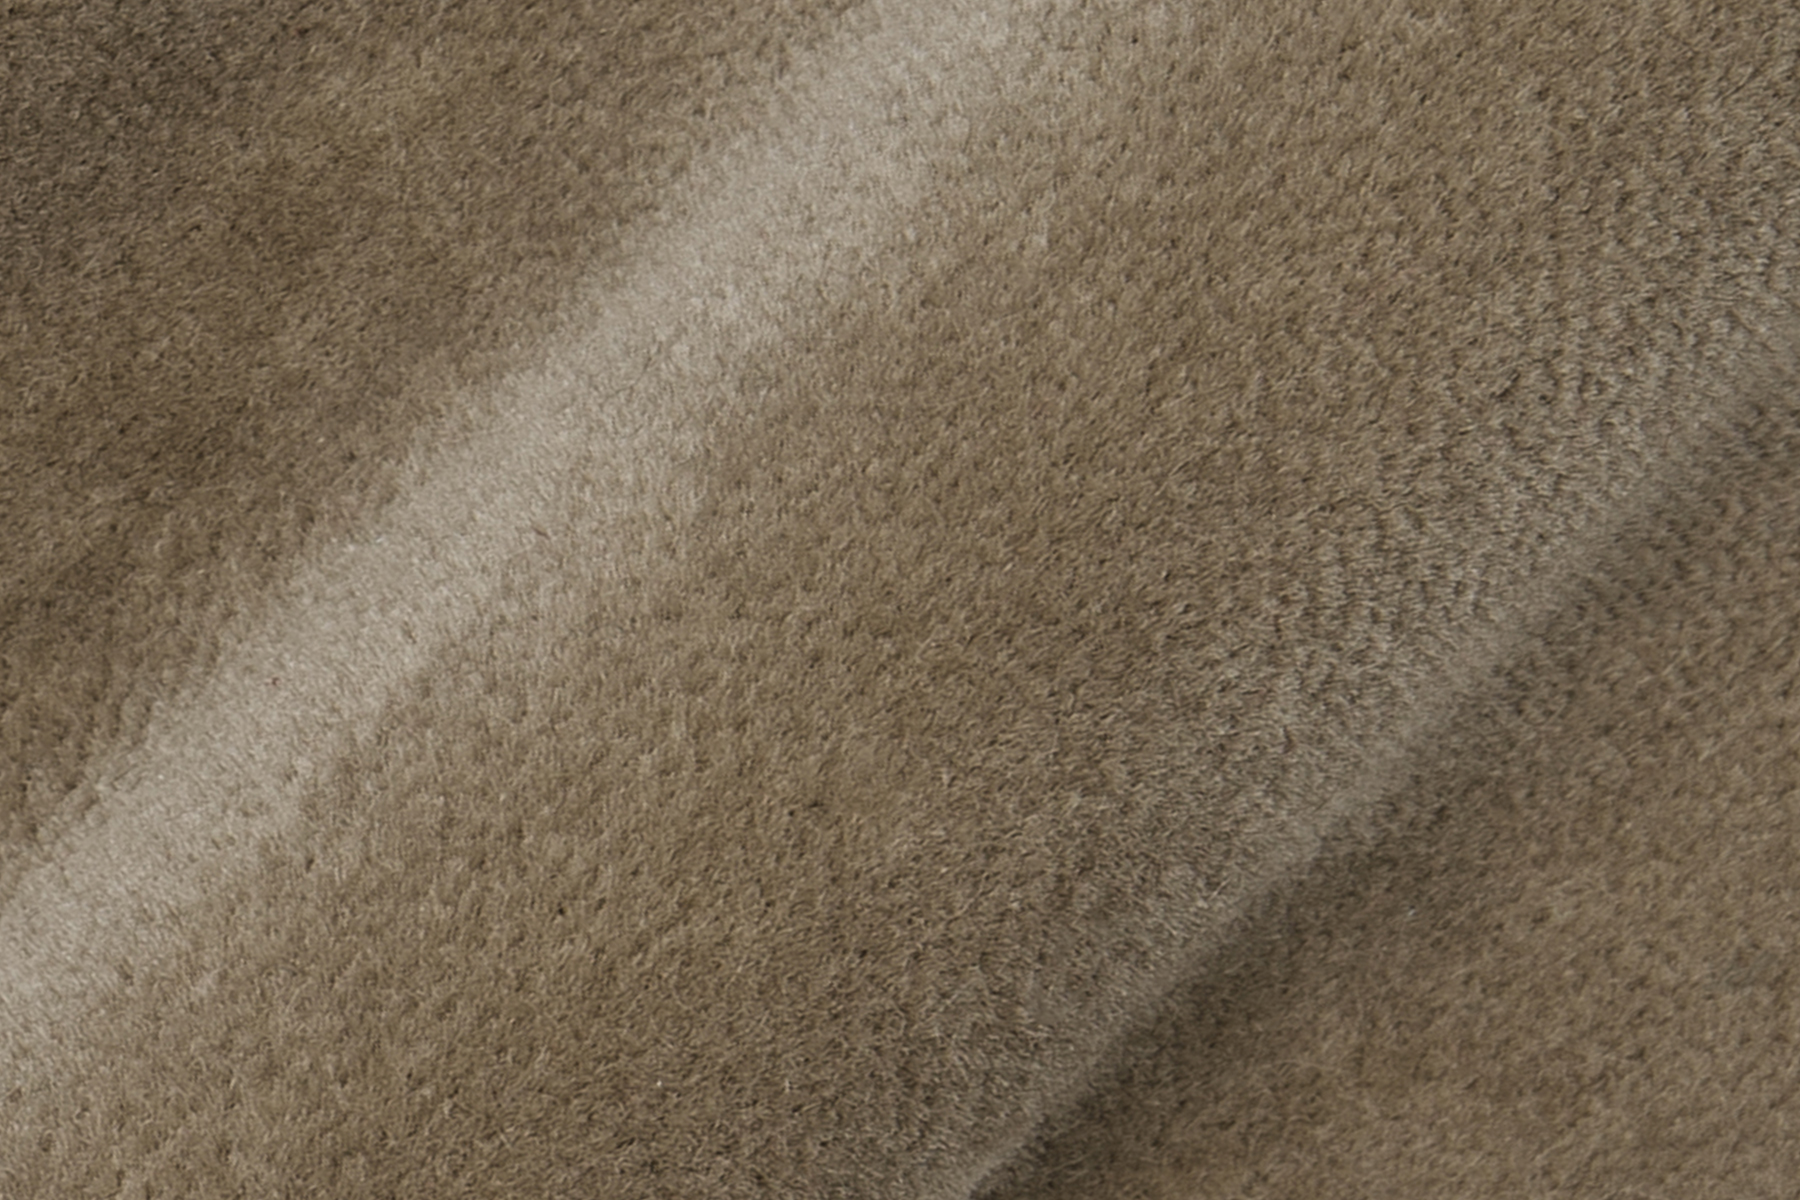 LUX VELVET 0083 TAUPE Fabric by KOKET